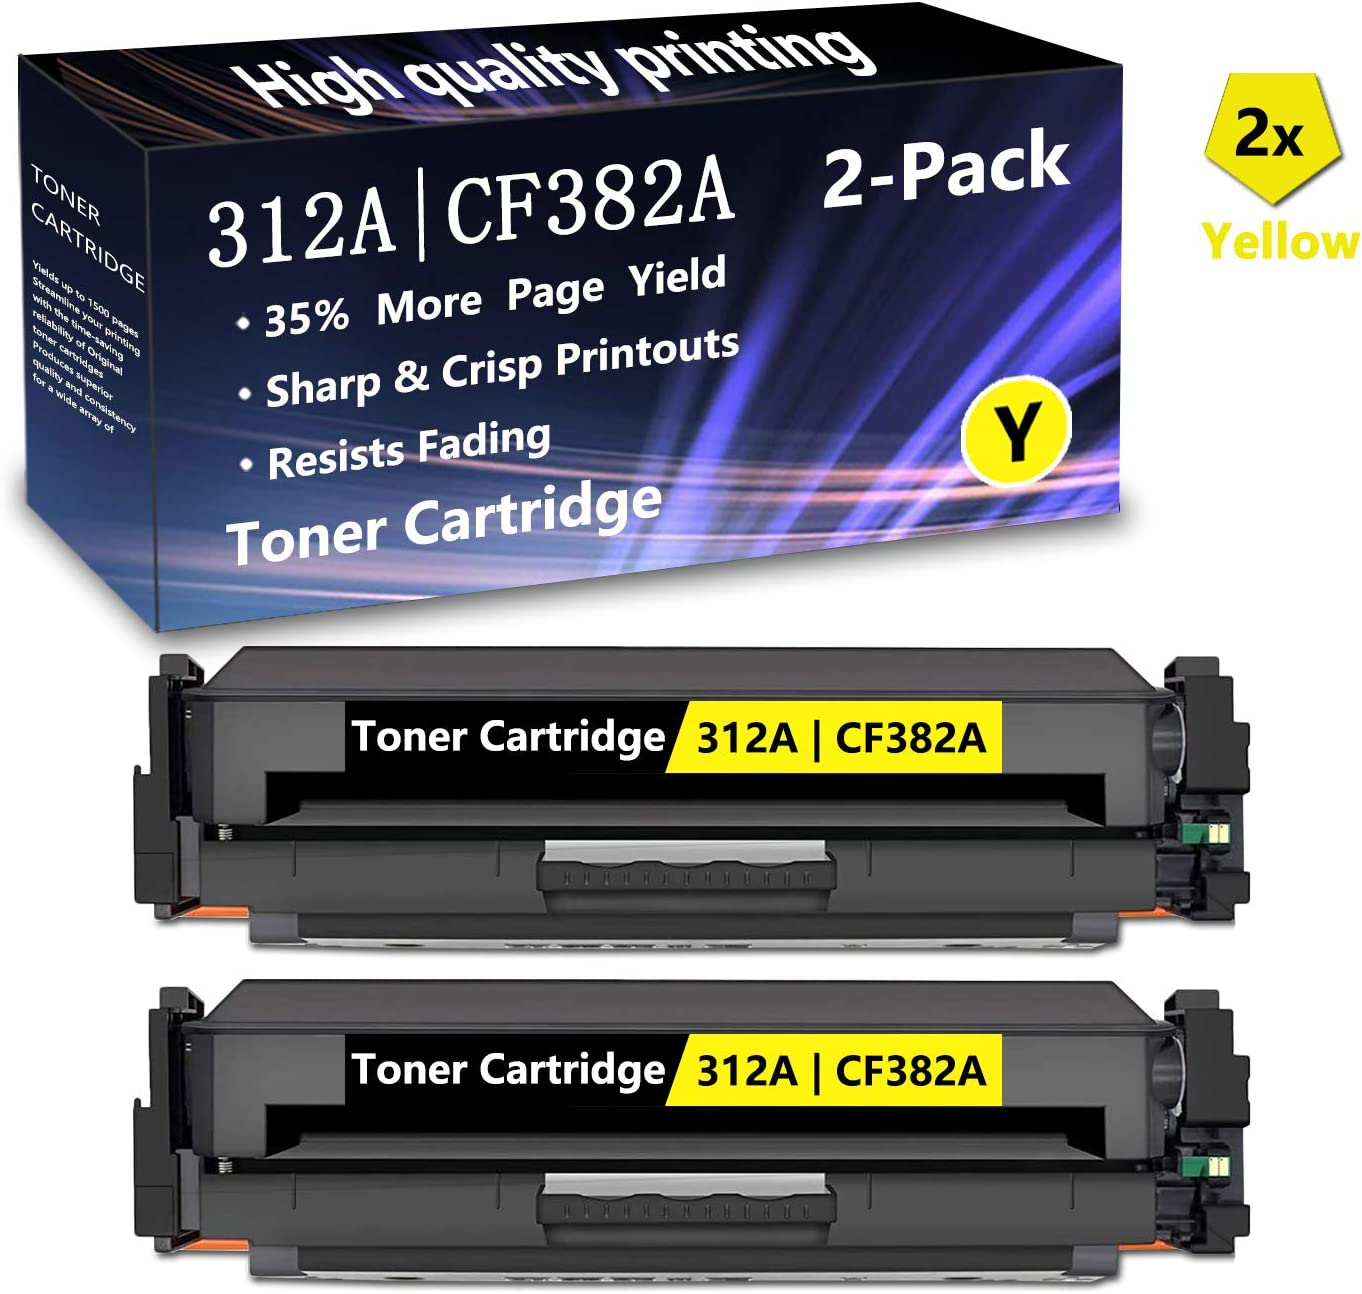 2 Pack 312A CF382A Remanufactured Toner Cartridge Replacement for HP Color Laserjet Pro MFP M476dw ,M476dn ,M476nw Toner Printers,Sold by AlToner 2 Yellow